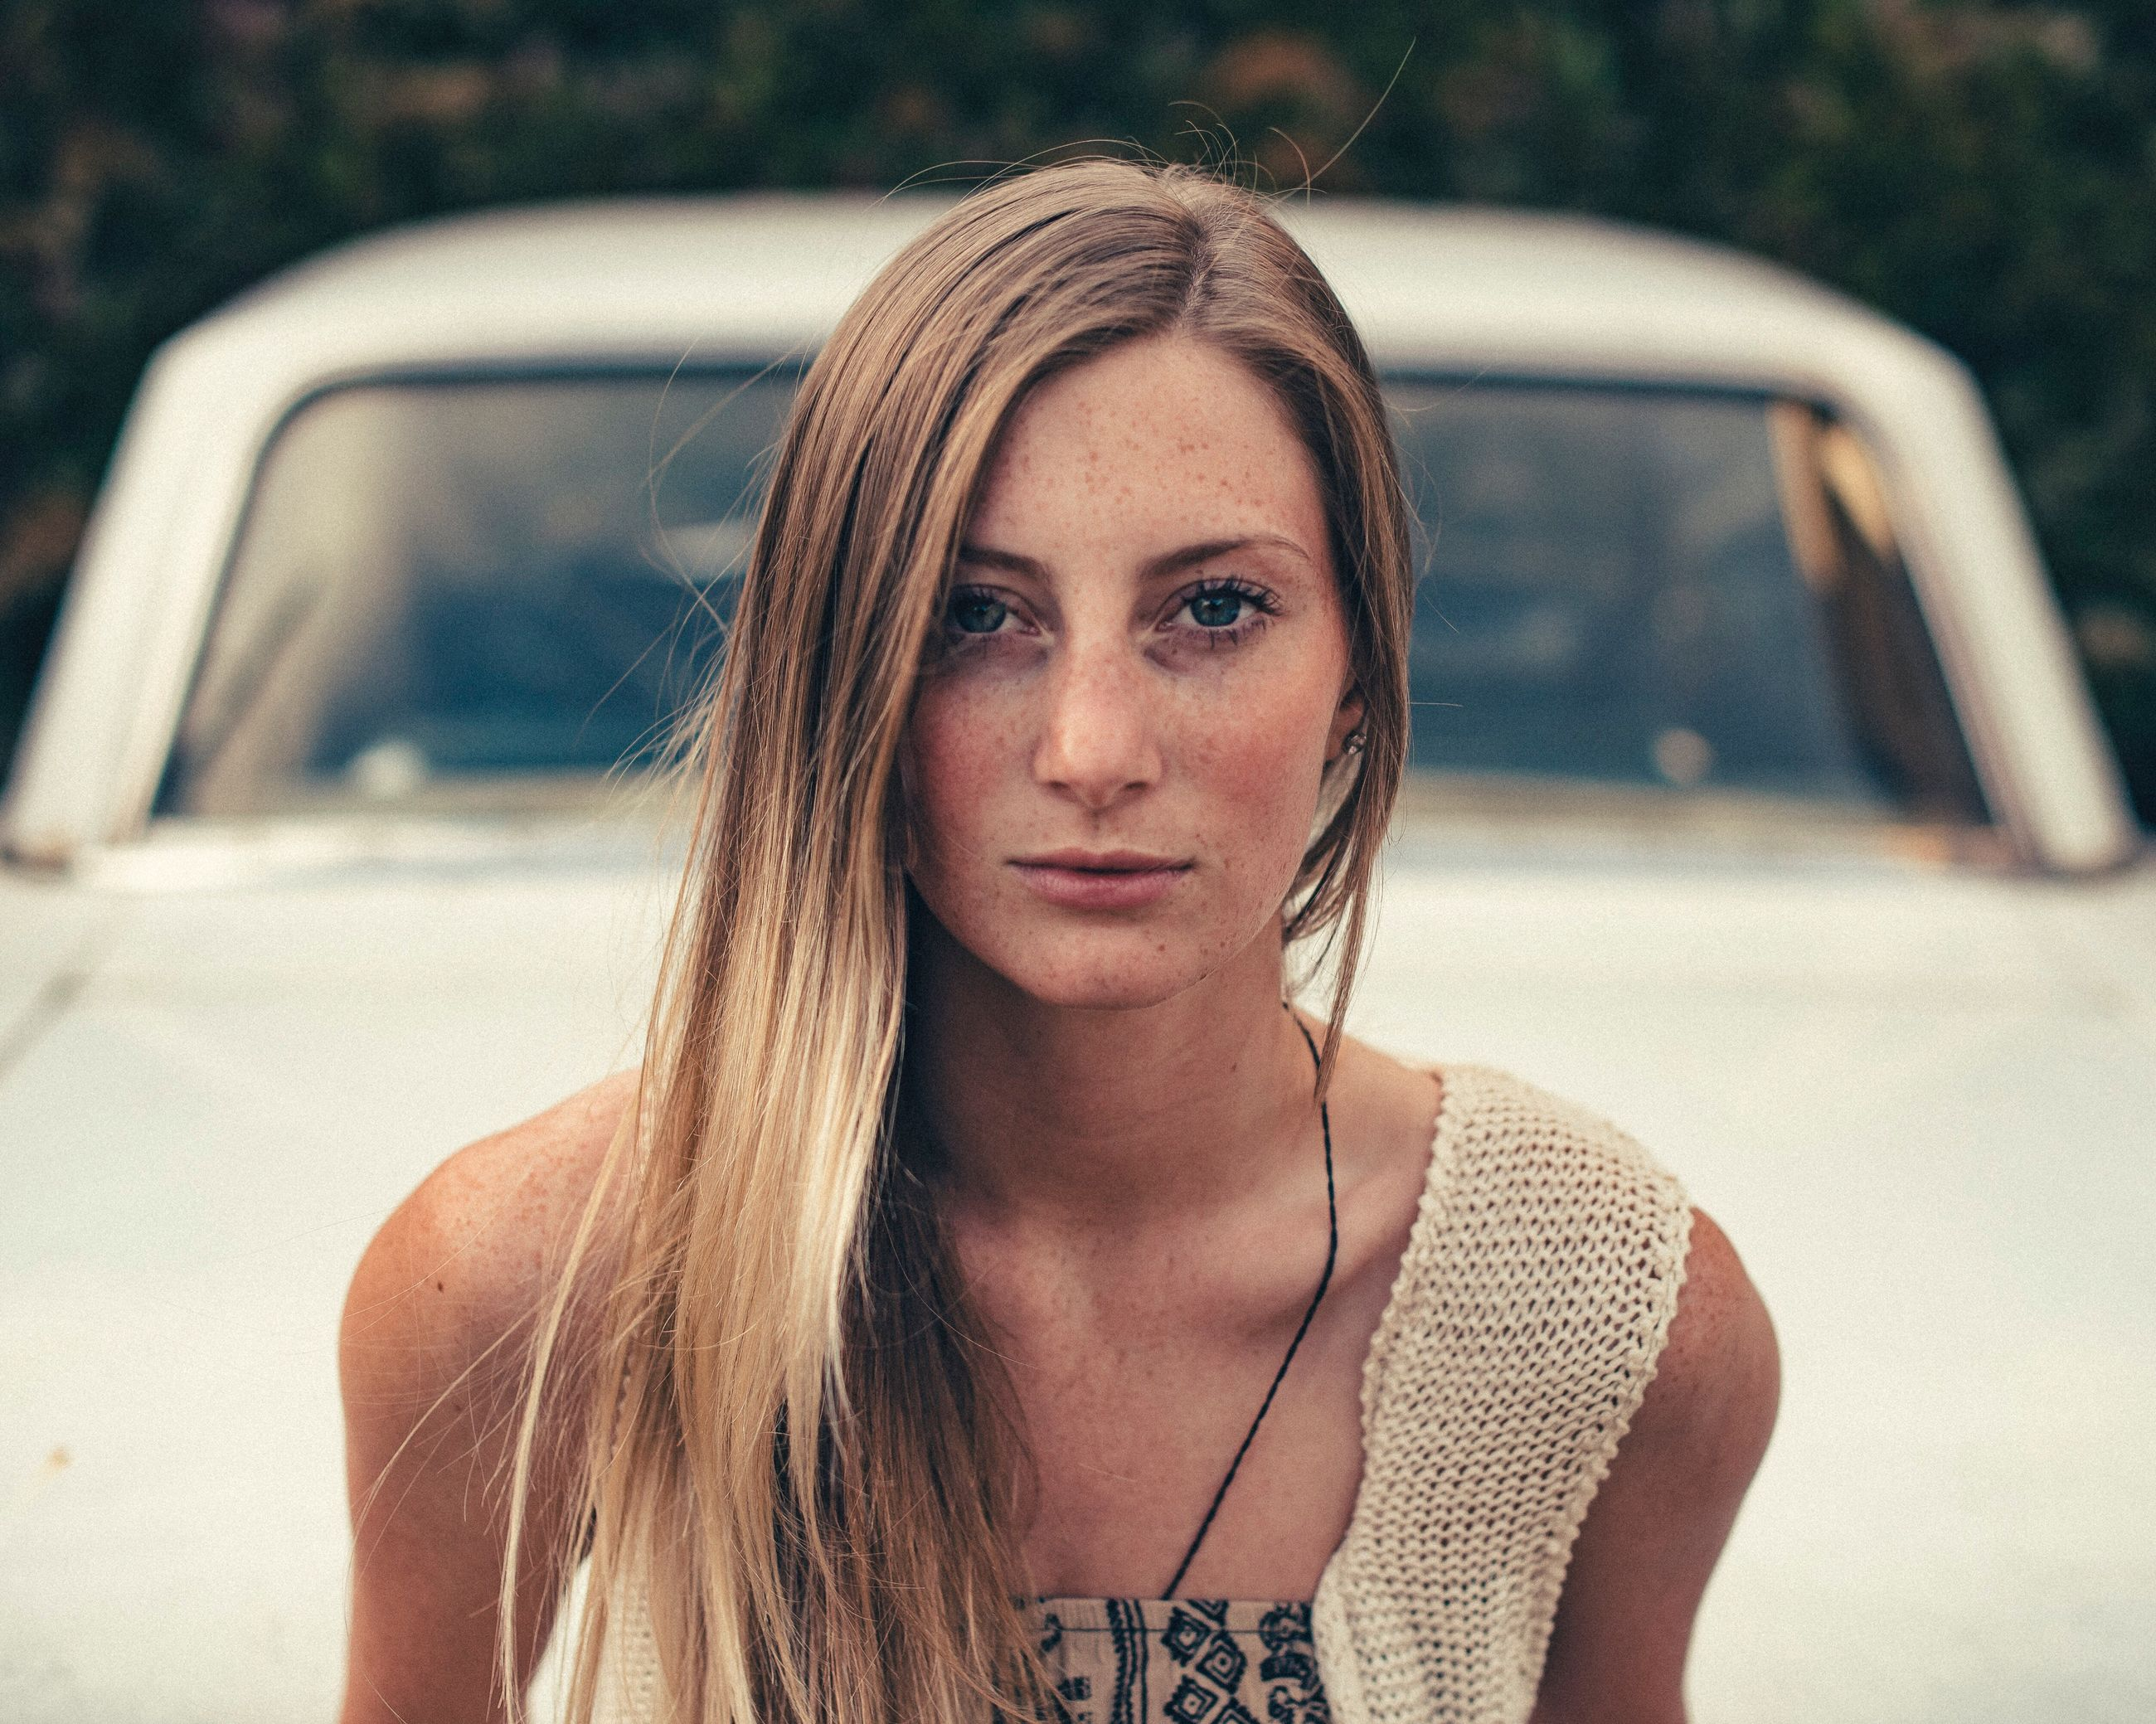 car, one person, road, outdoors, real people, young adult, day, people